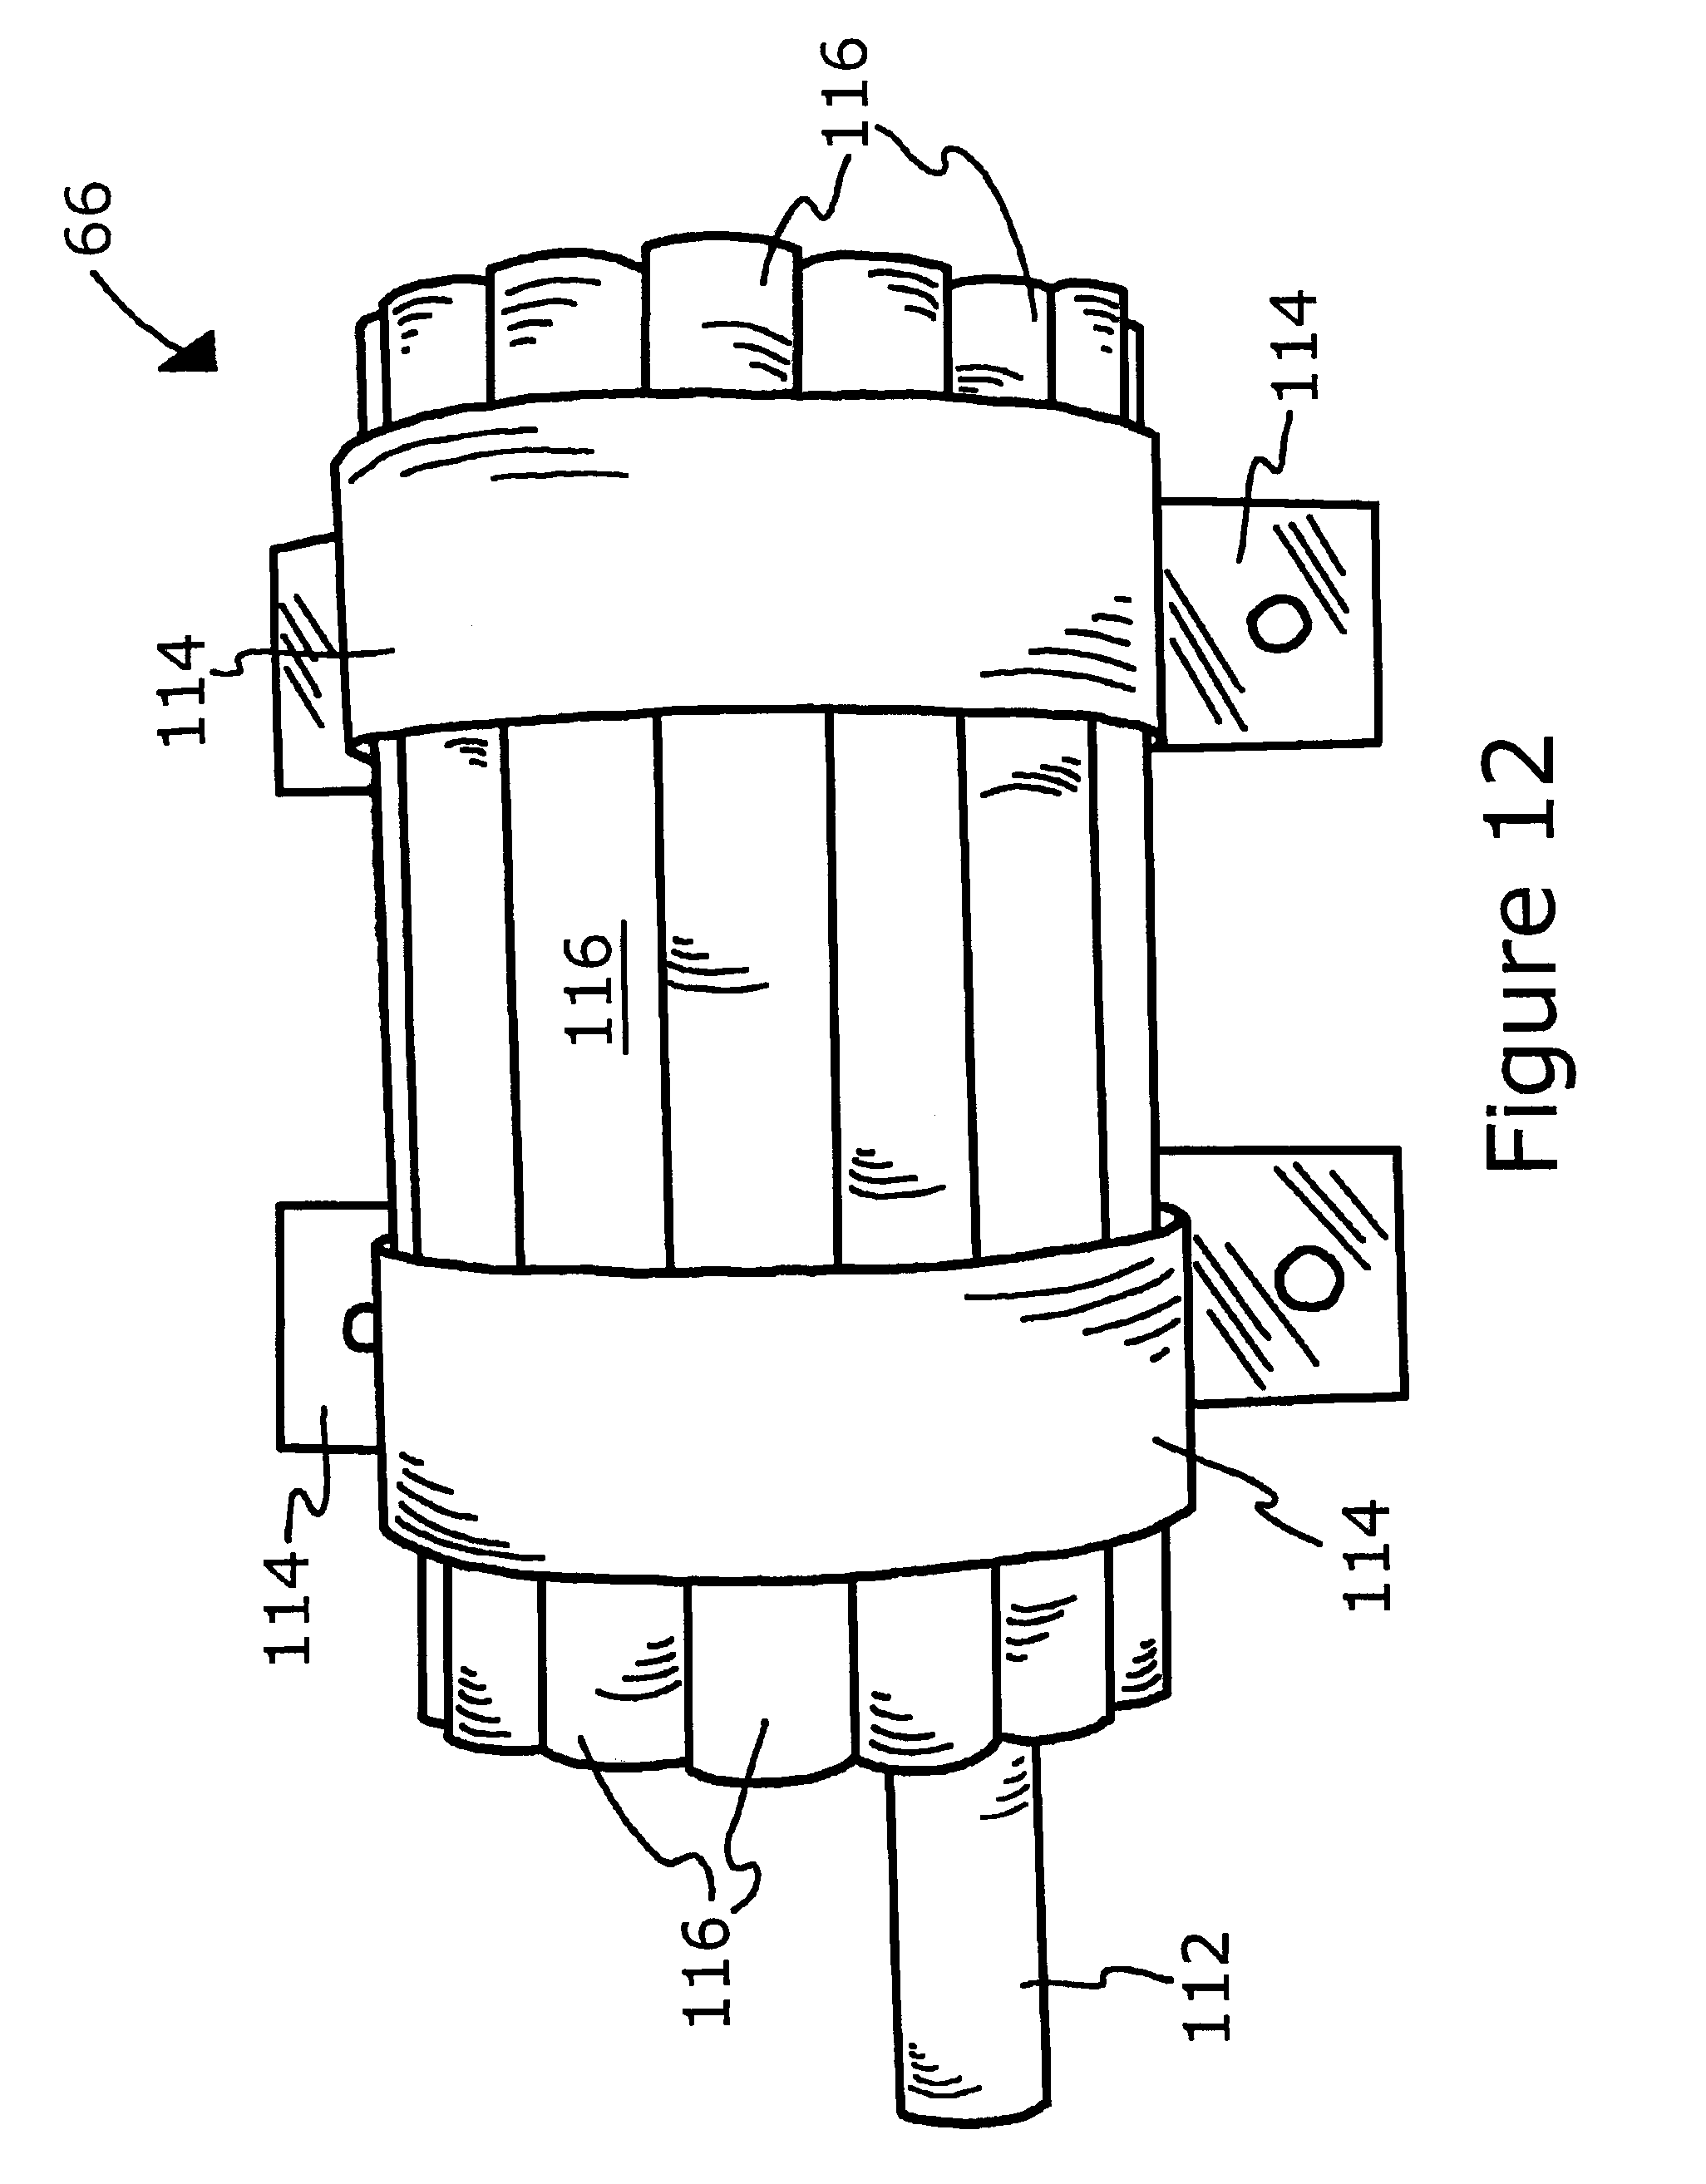 patent us20100187321 - home heating system utilizing electrolysis of water